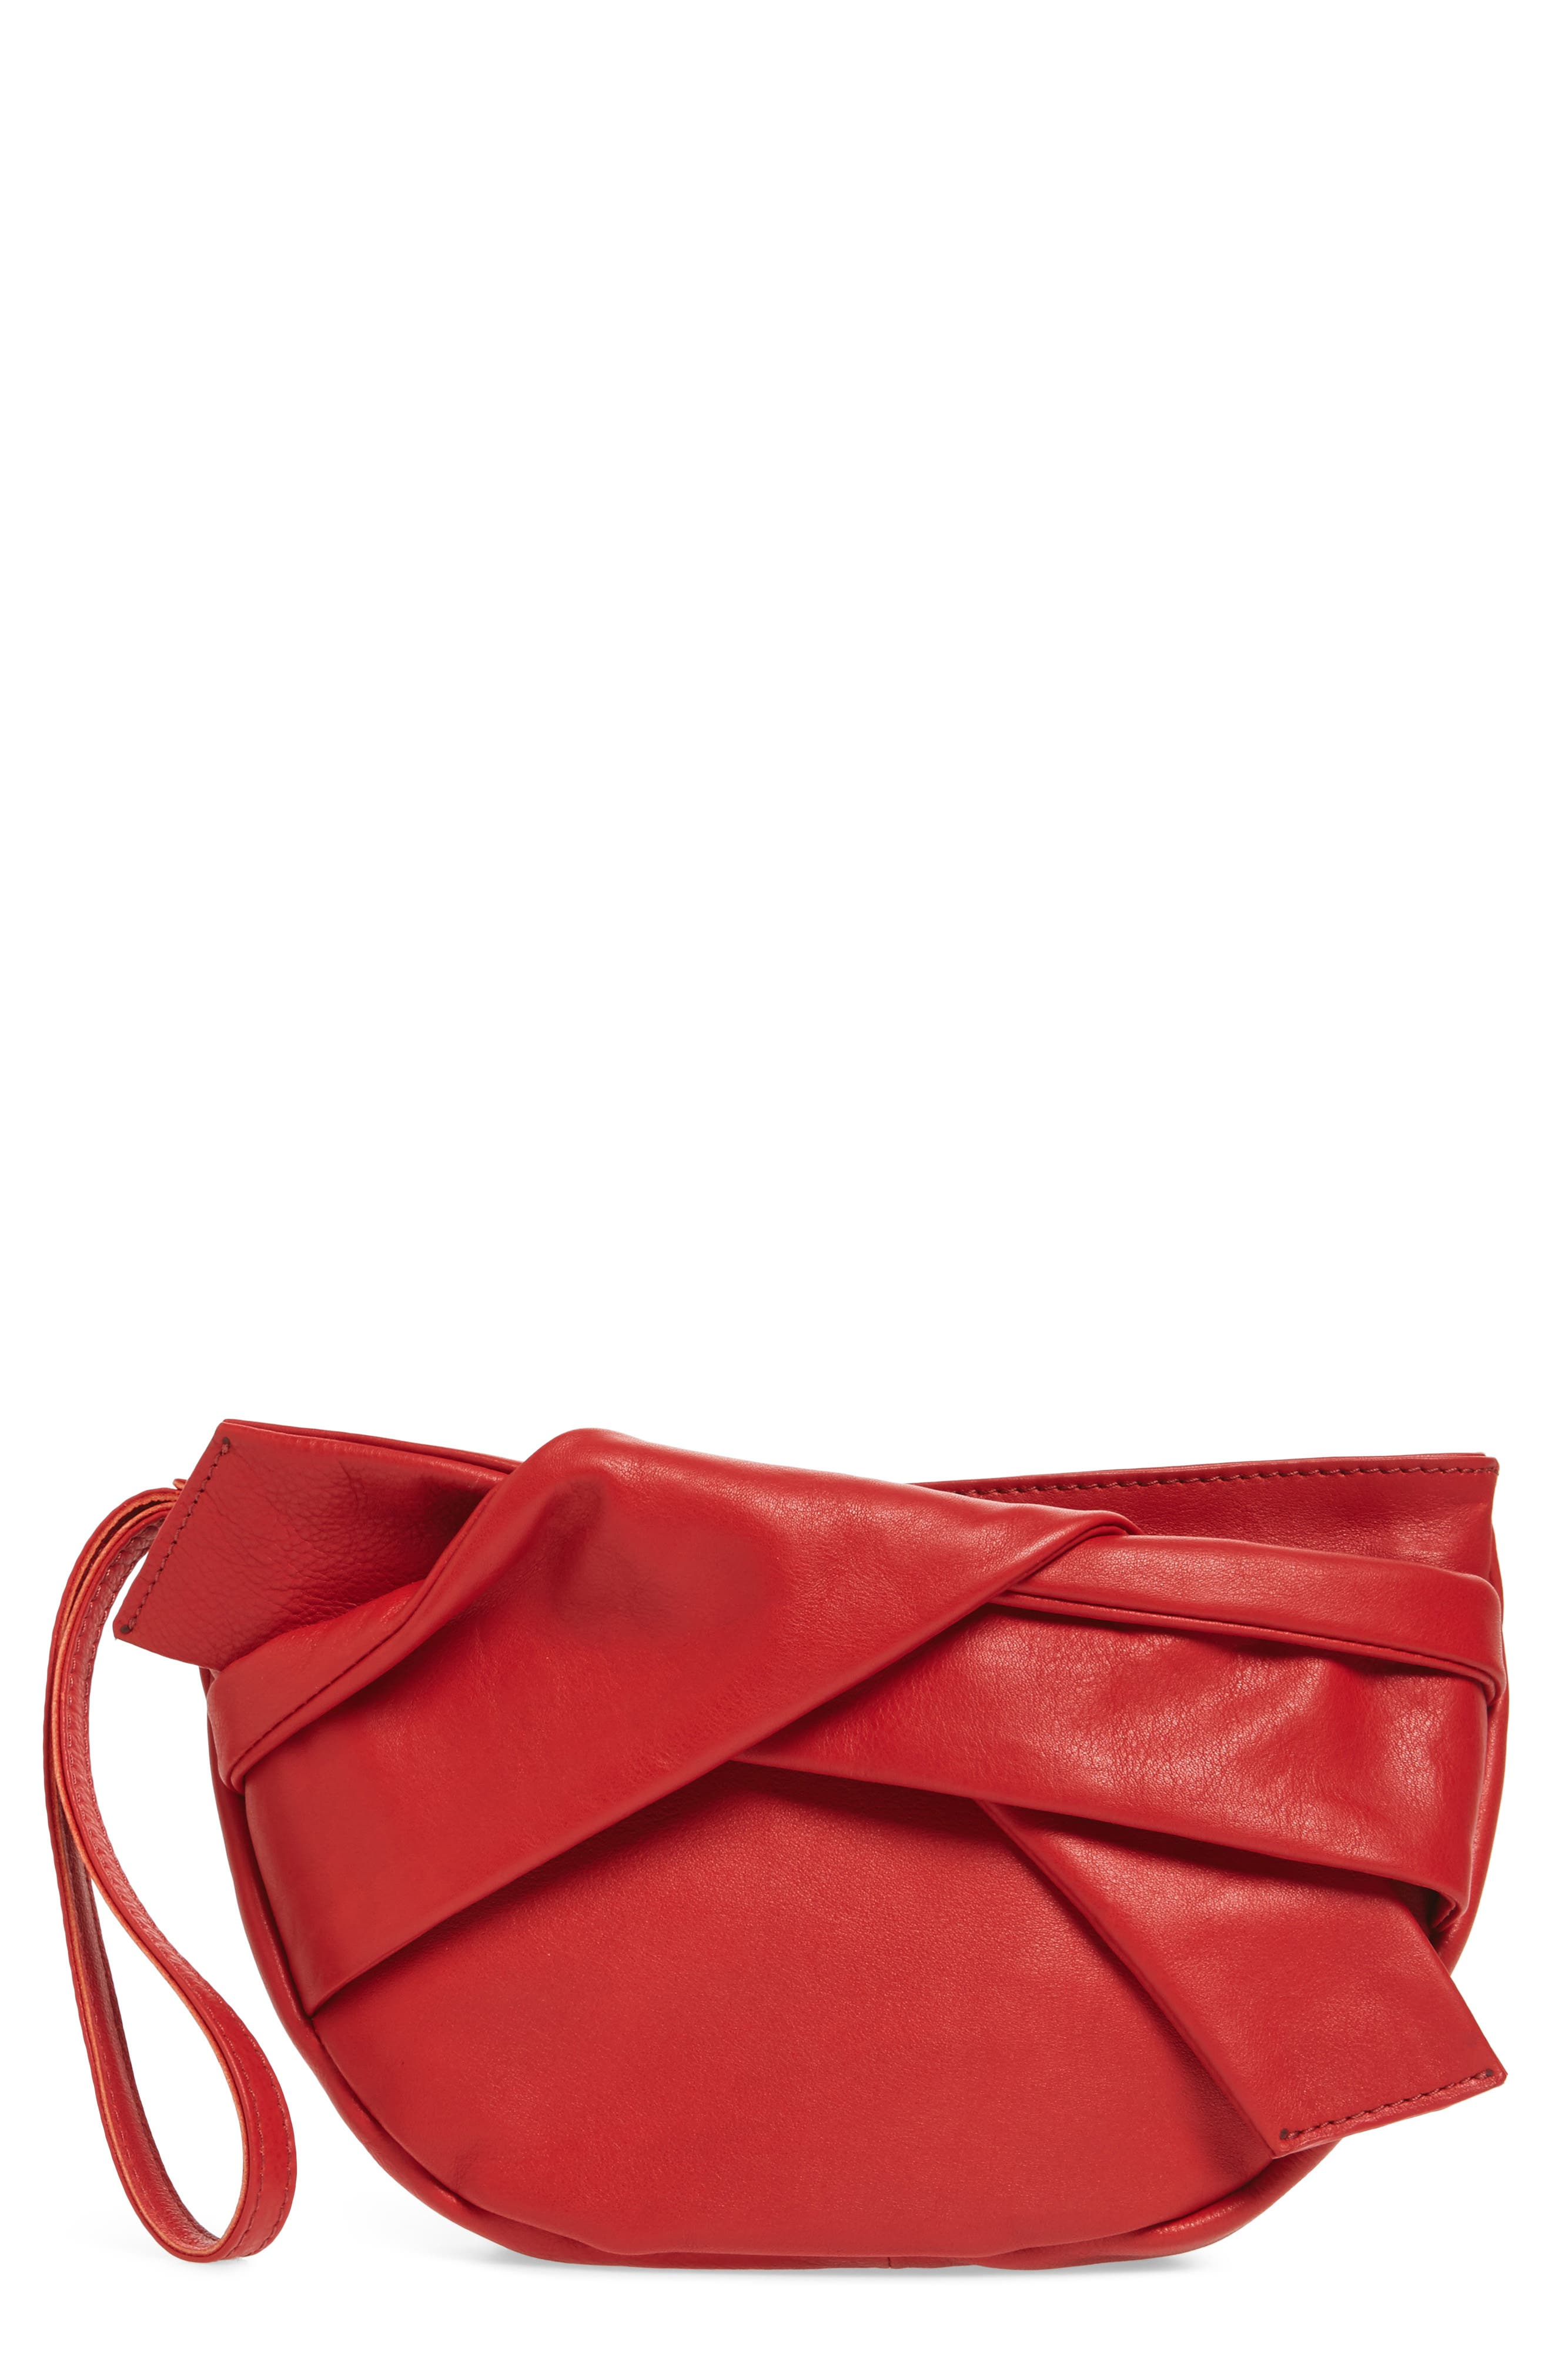 Jasmine Leather Clutch,                         Main,                         color, Red